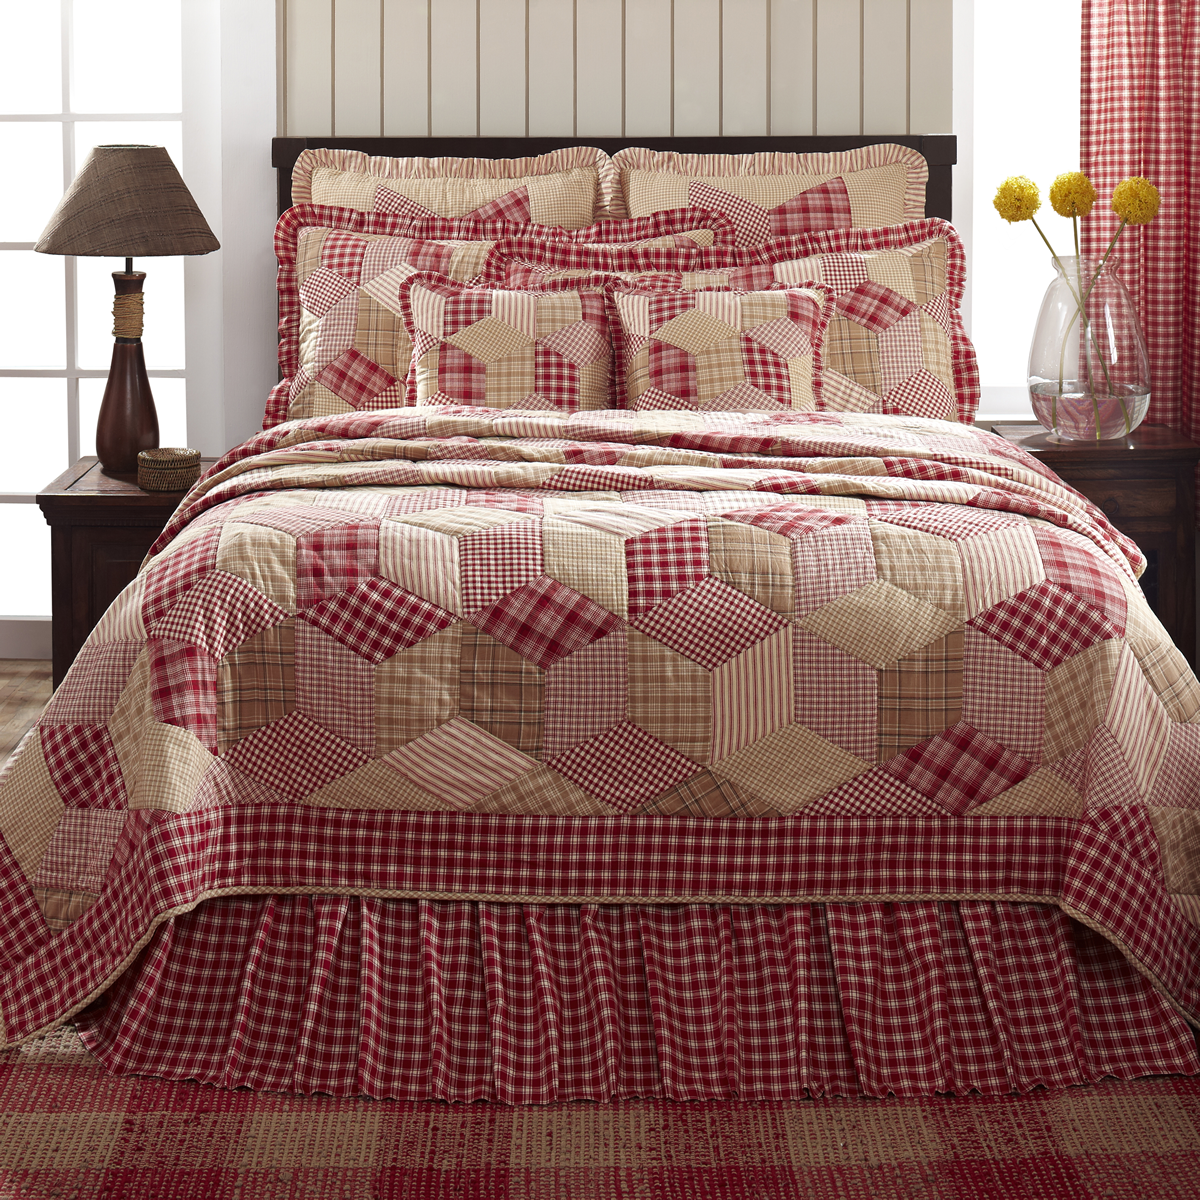 Breckenridge Red Plaid Country Patchwork Quilt - 6 Piece Set